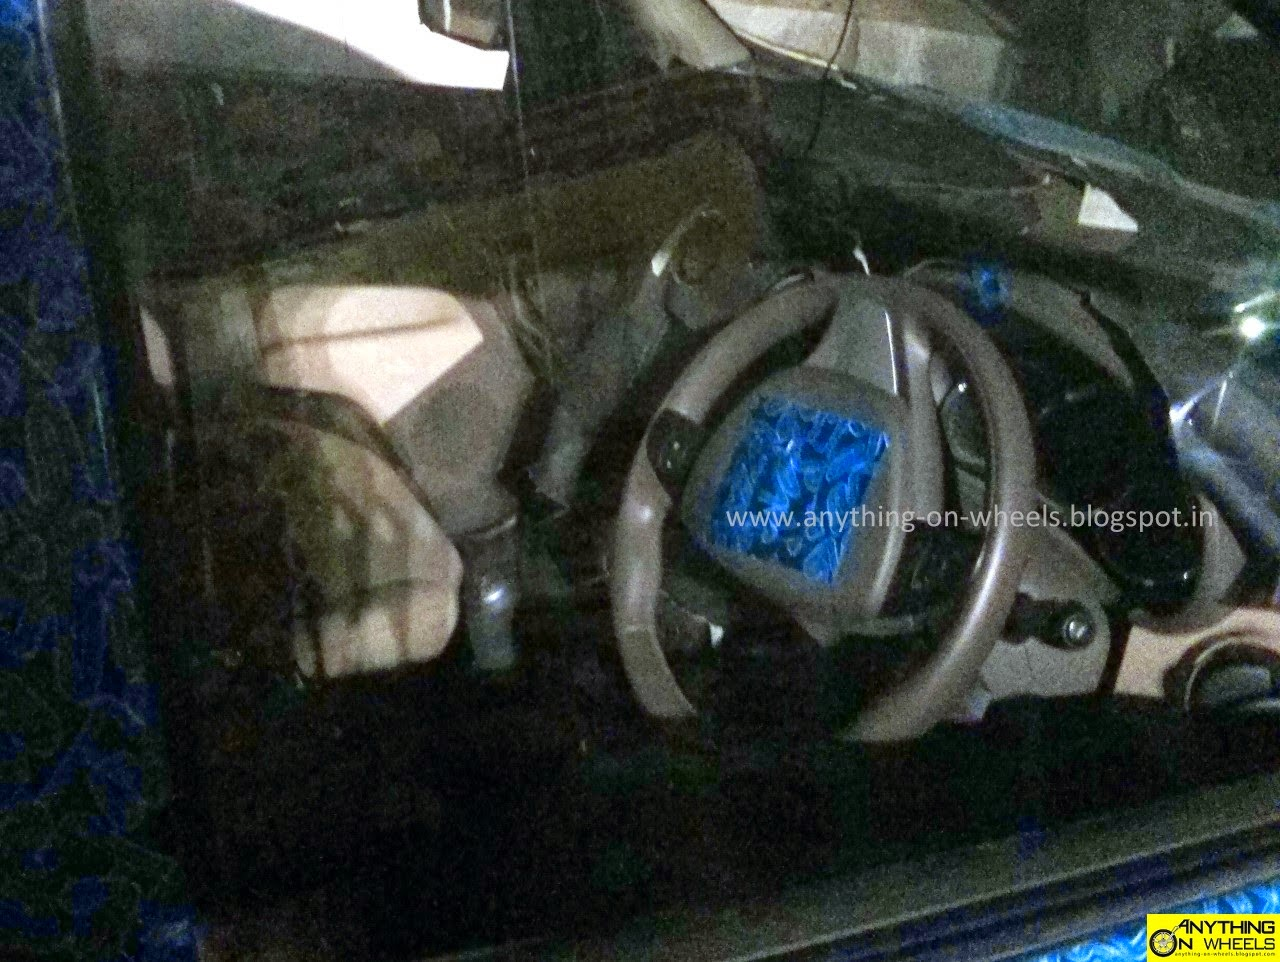 Renault-Lodgy-MPV-Spy-Pic-India-interiors